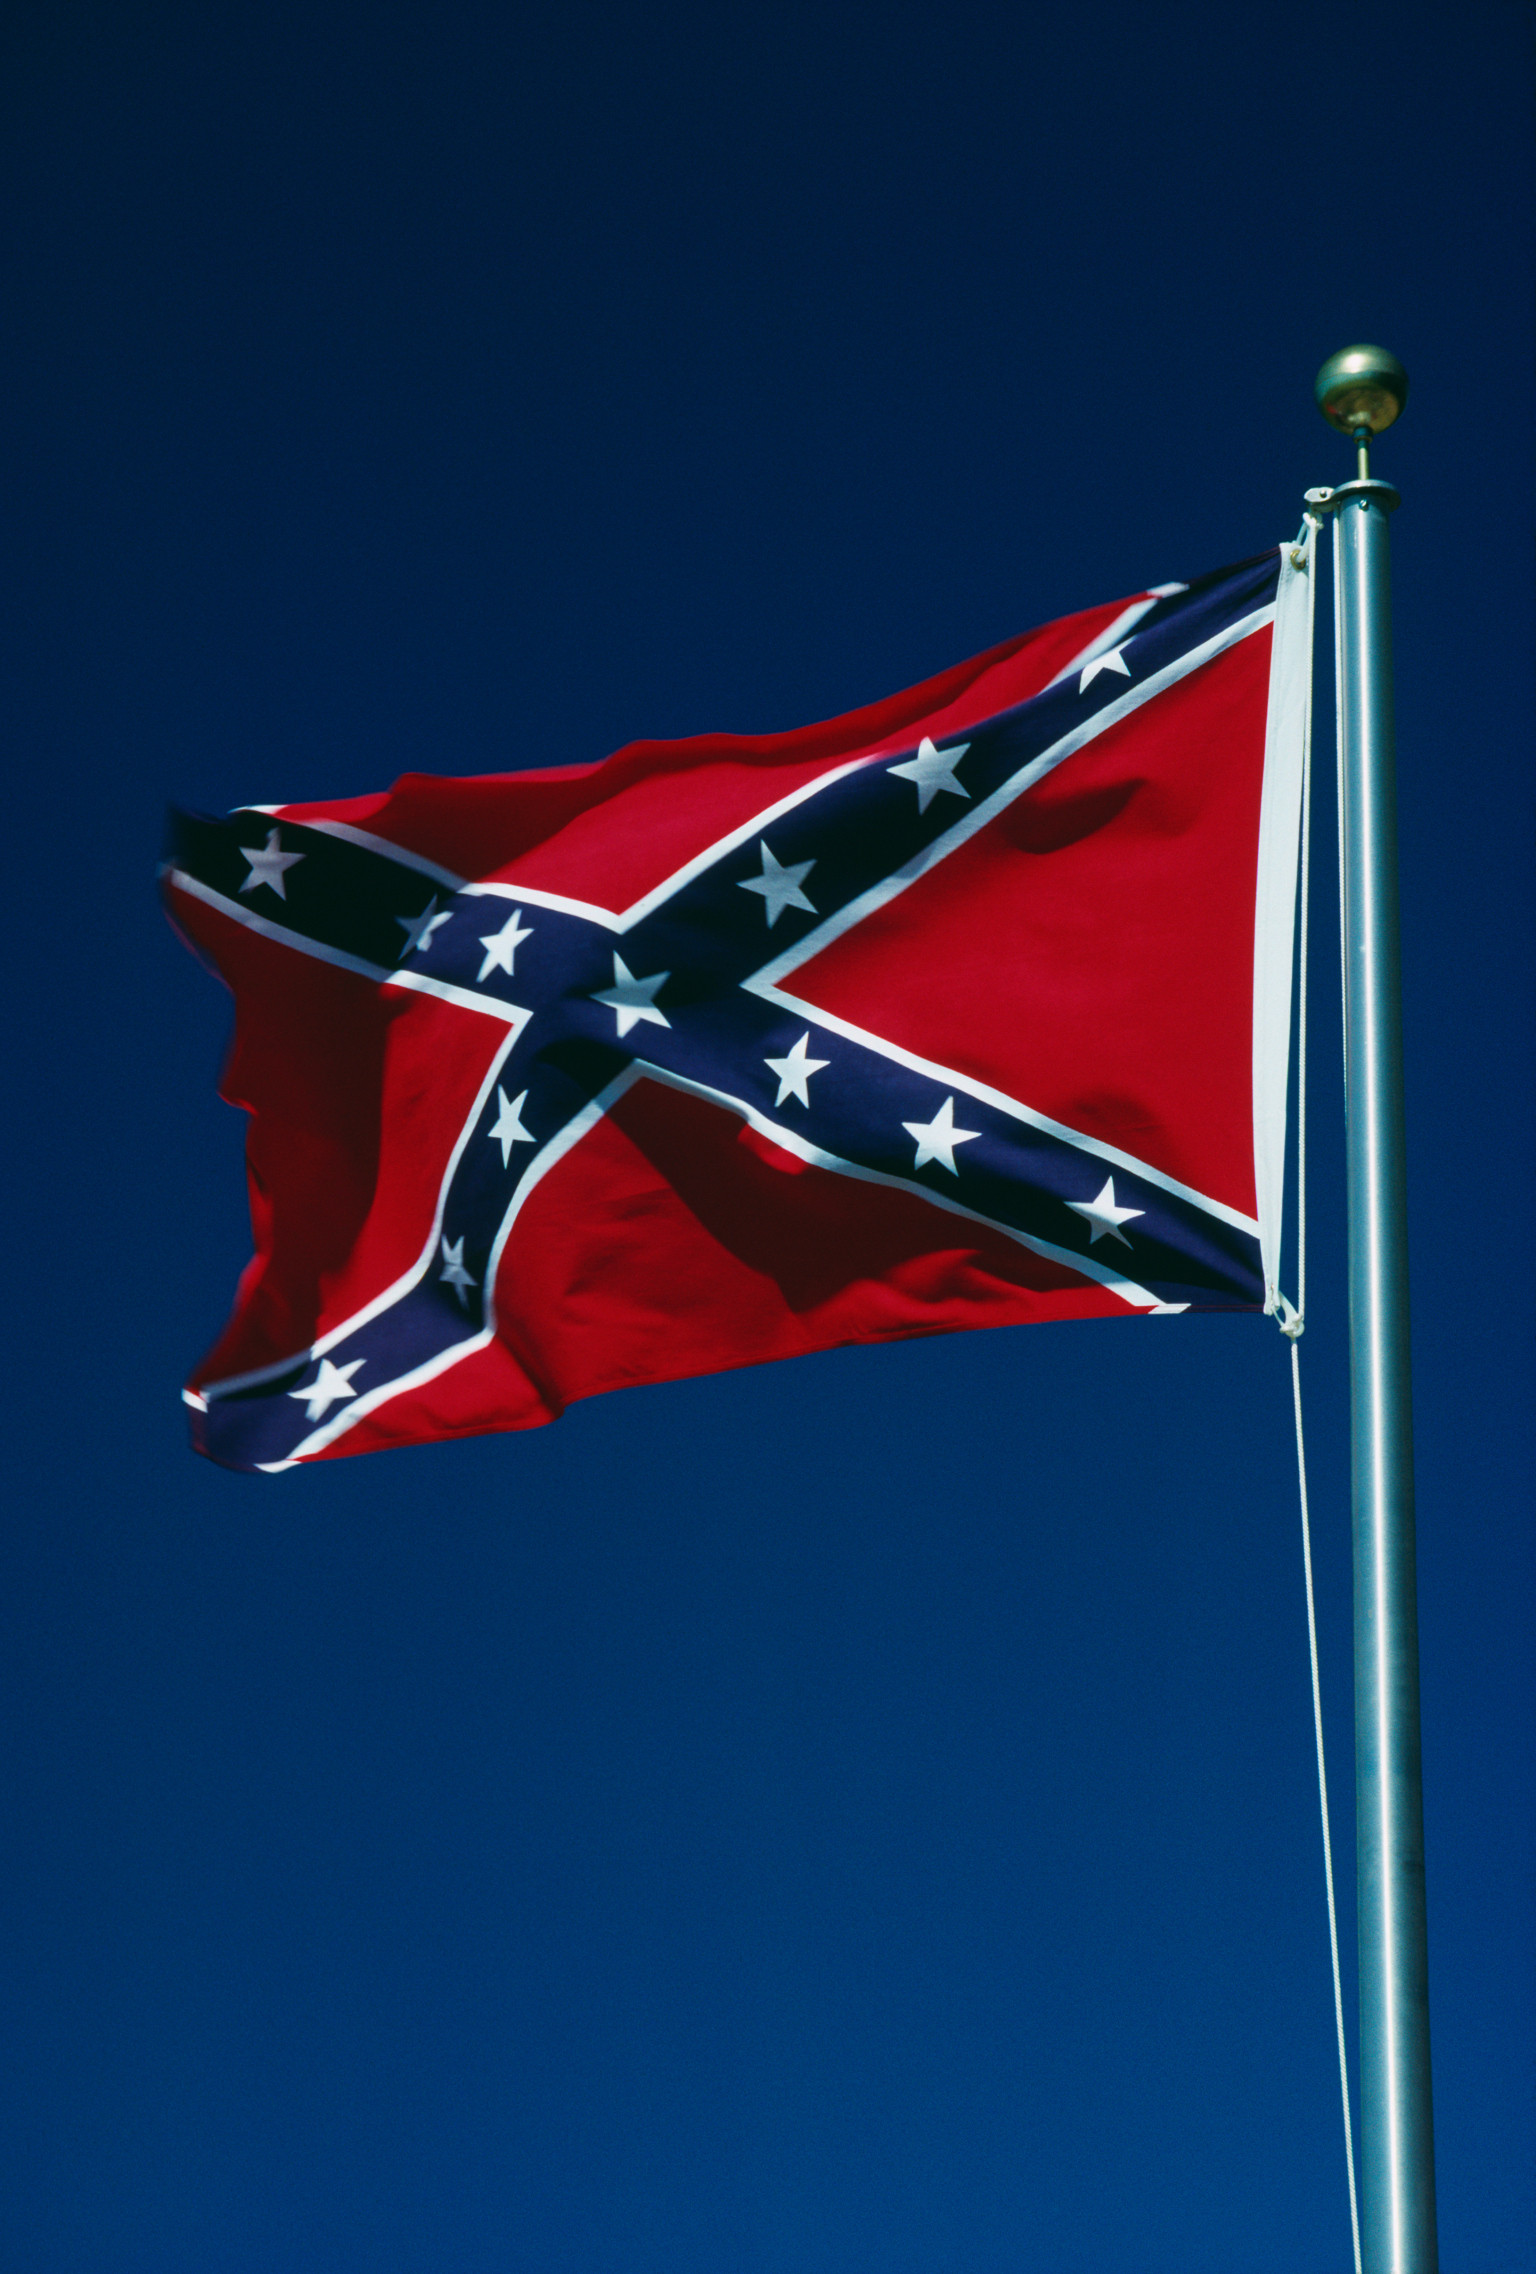 the confederate flag An image circulating online promotes the claim that the colors of the confederate battle flag were chosen for their religious meanings, but that interpretation runs counter to historical.